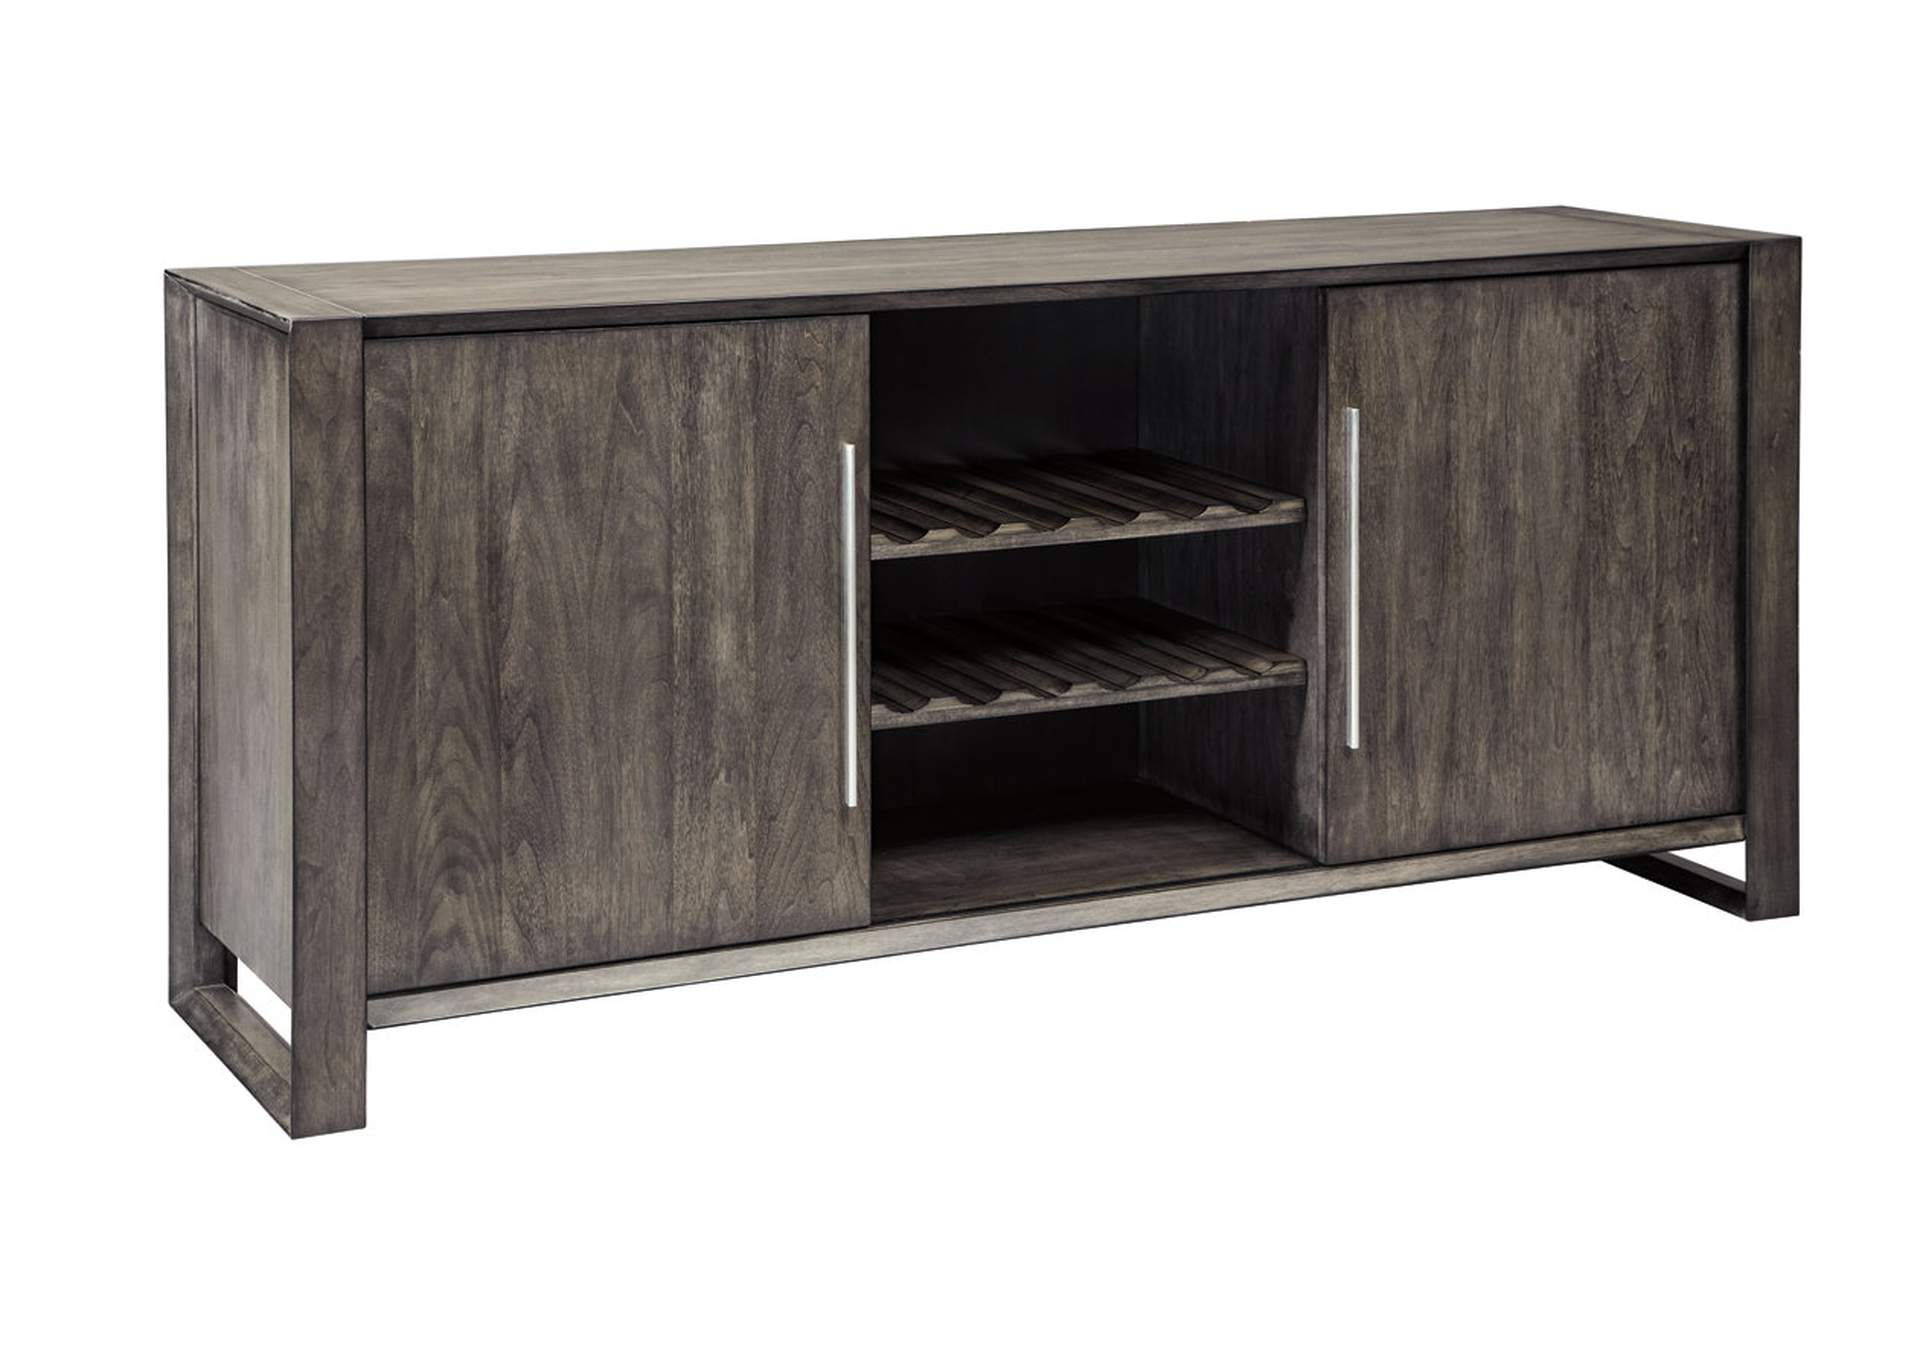 Furniture 4 less outlet chadoni gray dining room server for Furniture 4 less outlet